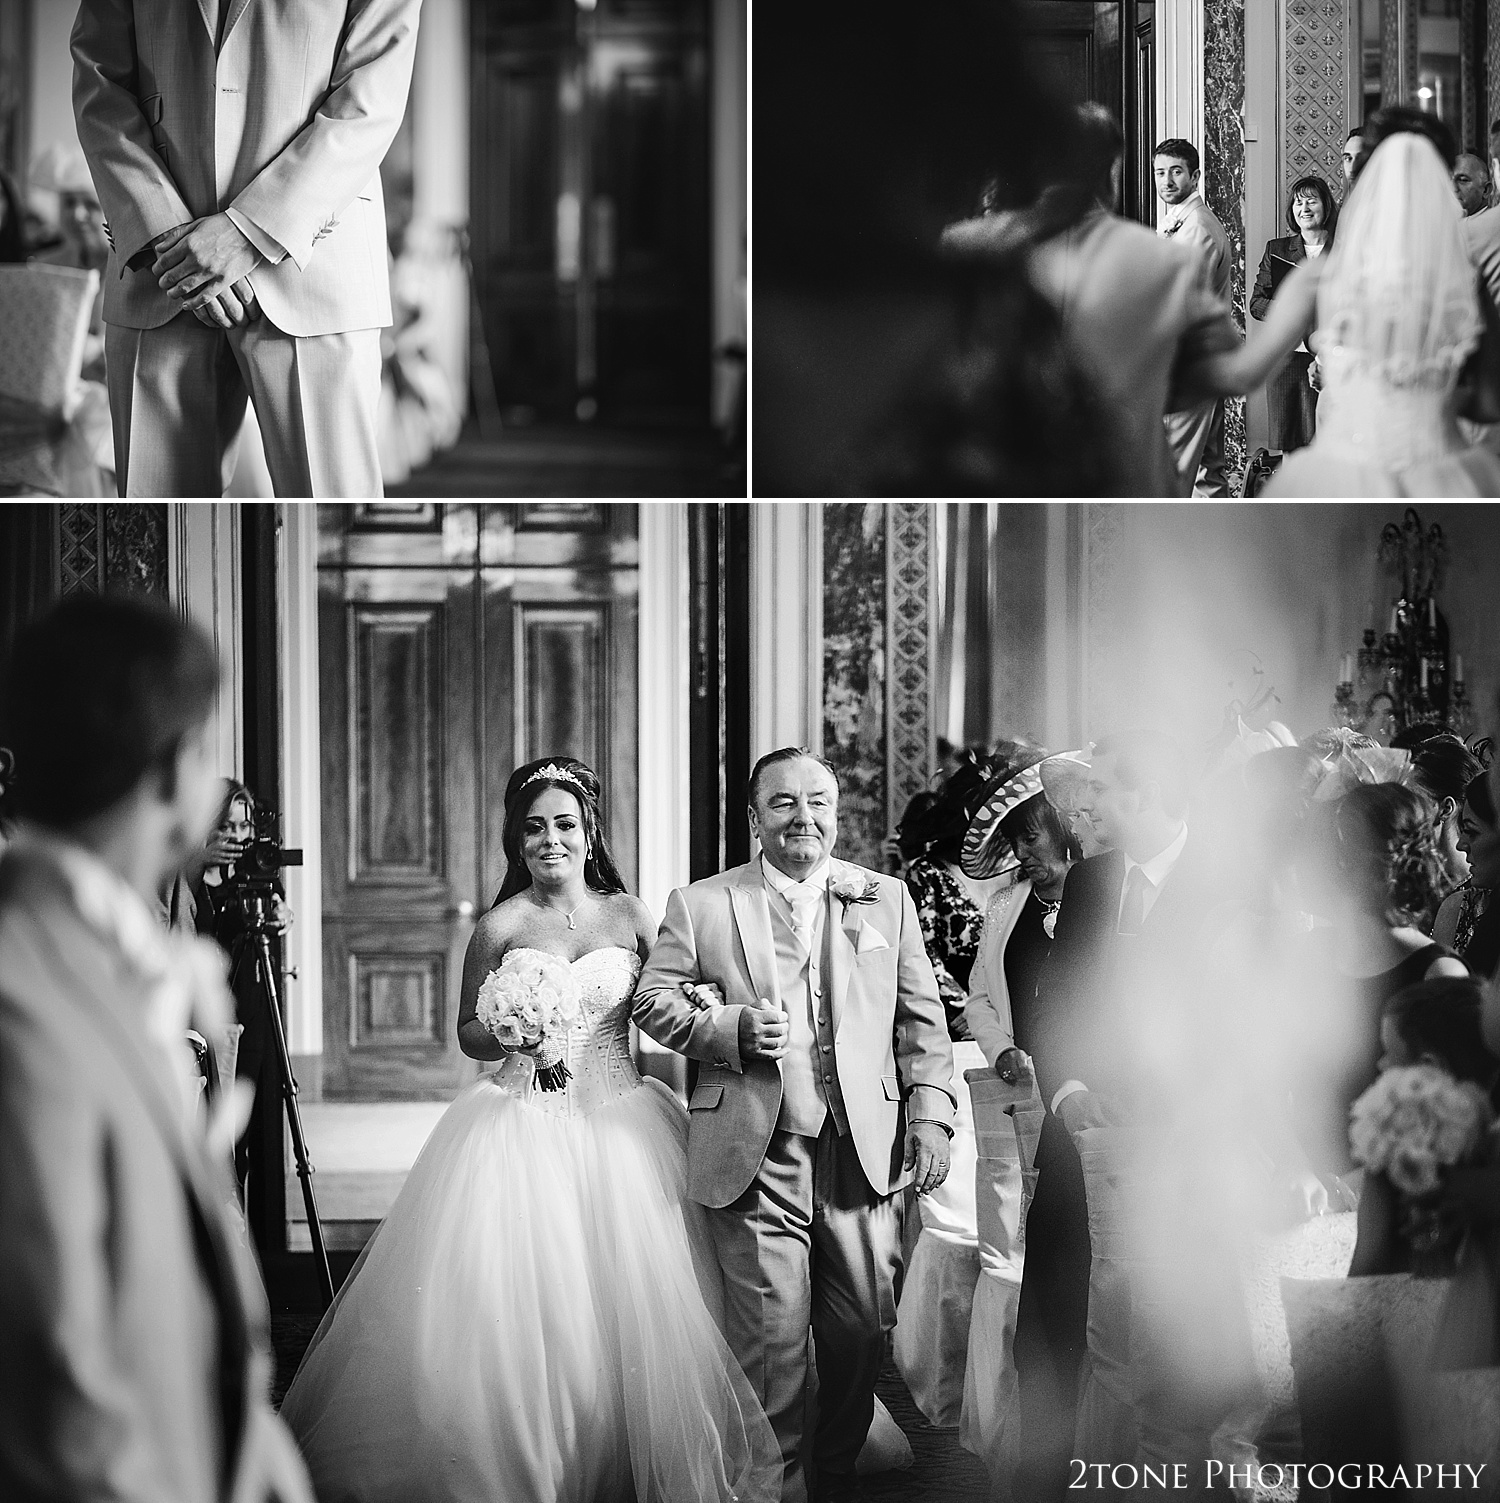 The arrival of the bride in the mirror room at Wynyard Hall by Newcastle and Durham based Wedding Photographer www.2tonephotography.co.uk